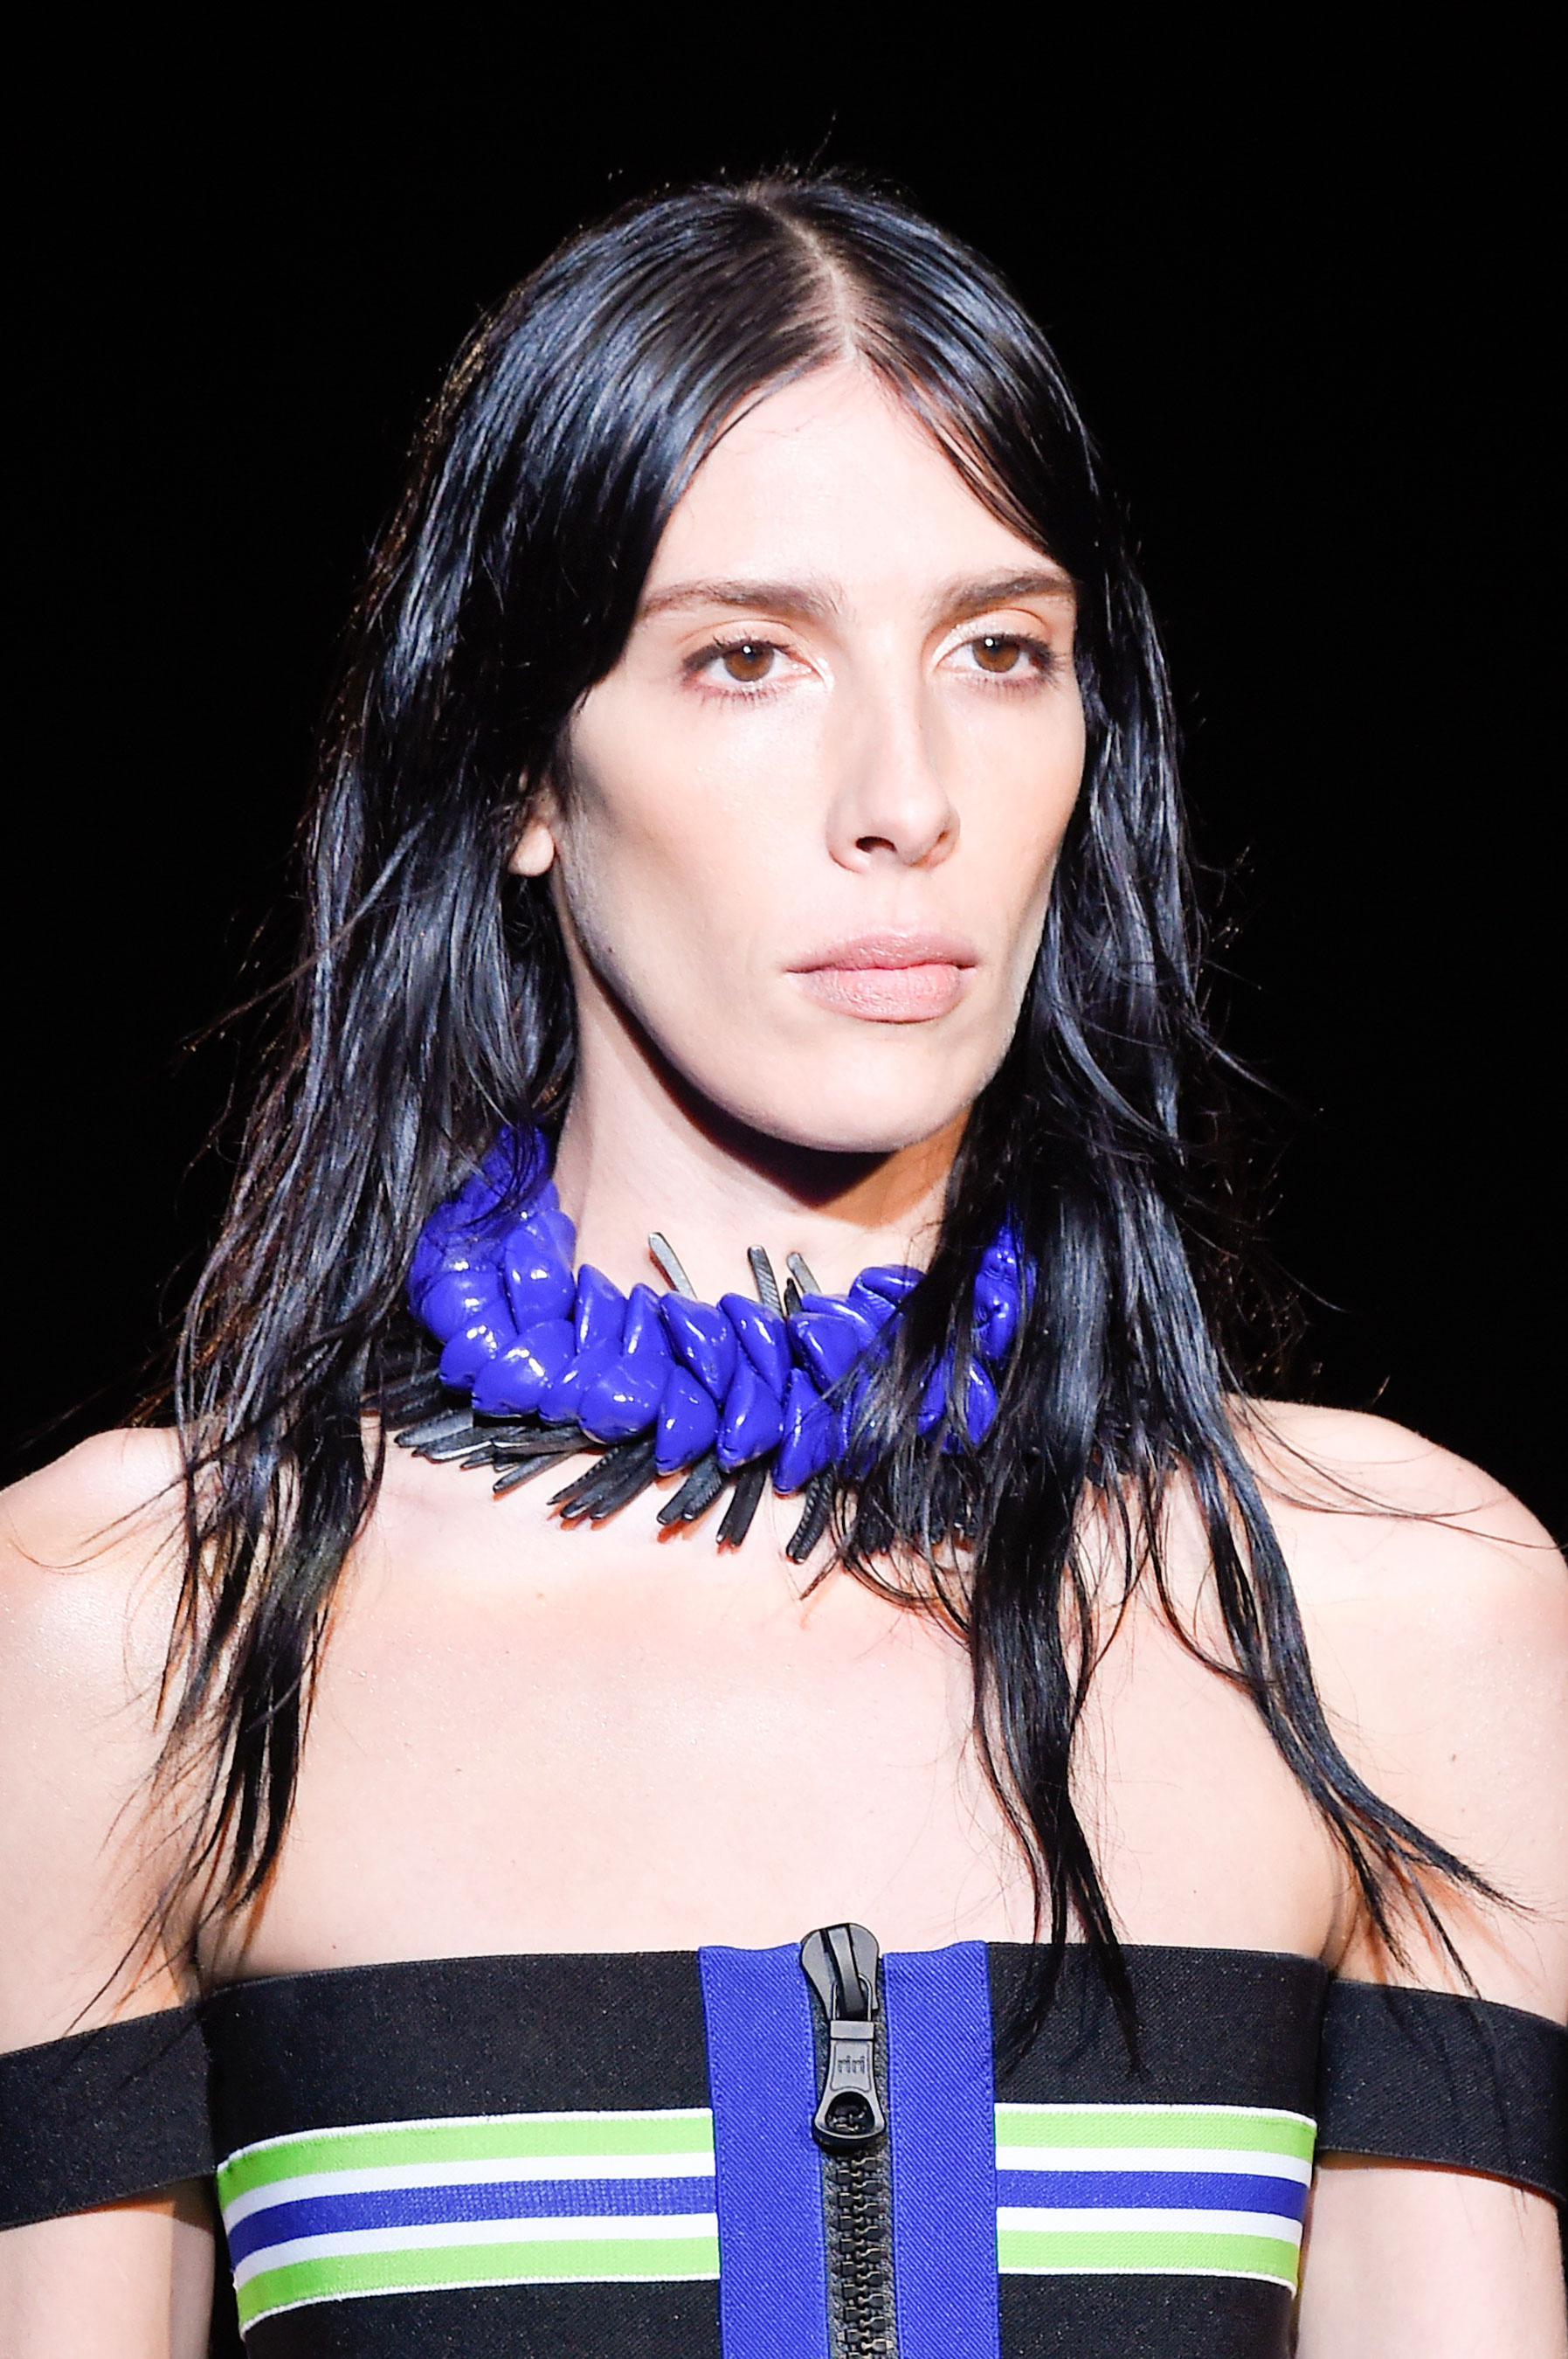 DSquared2-runway-beauty-spring-2016-fashion-show-the-impression-008